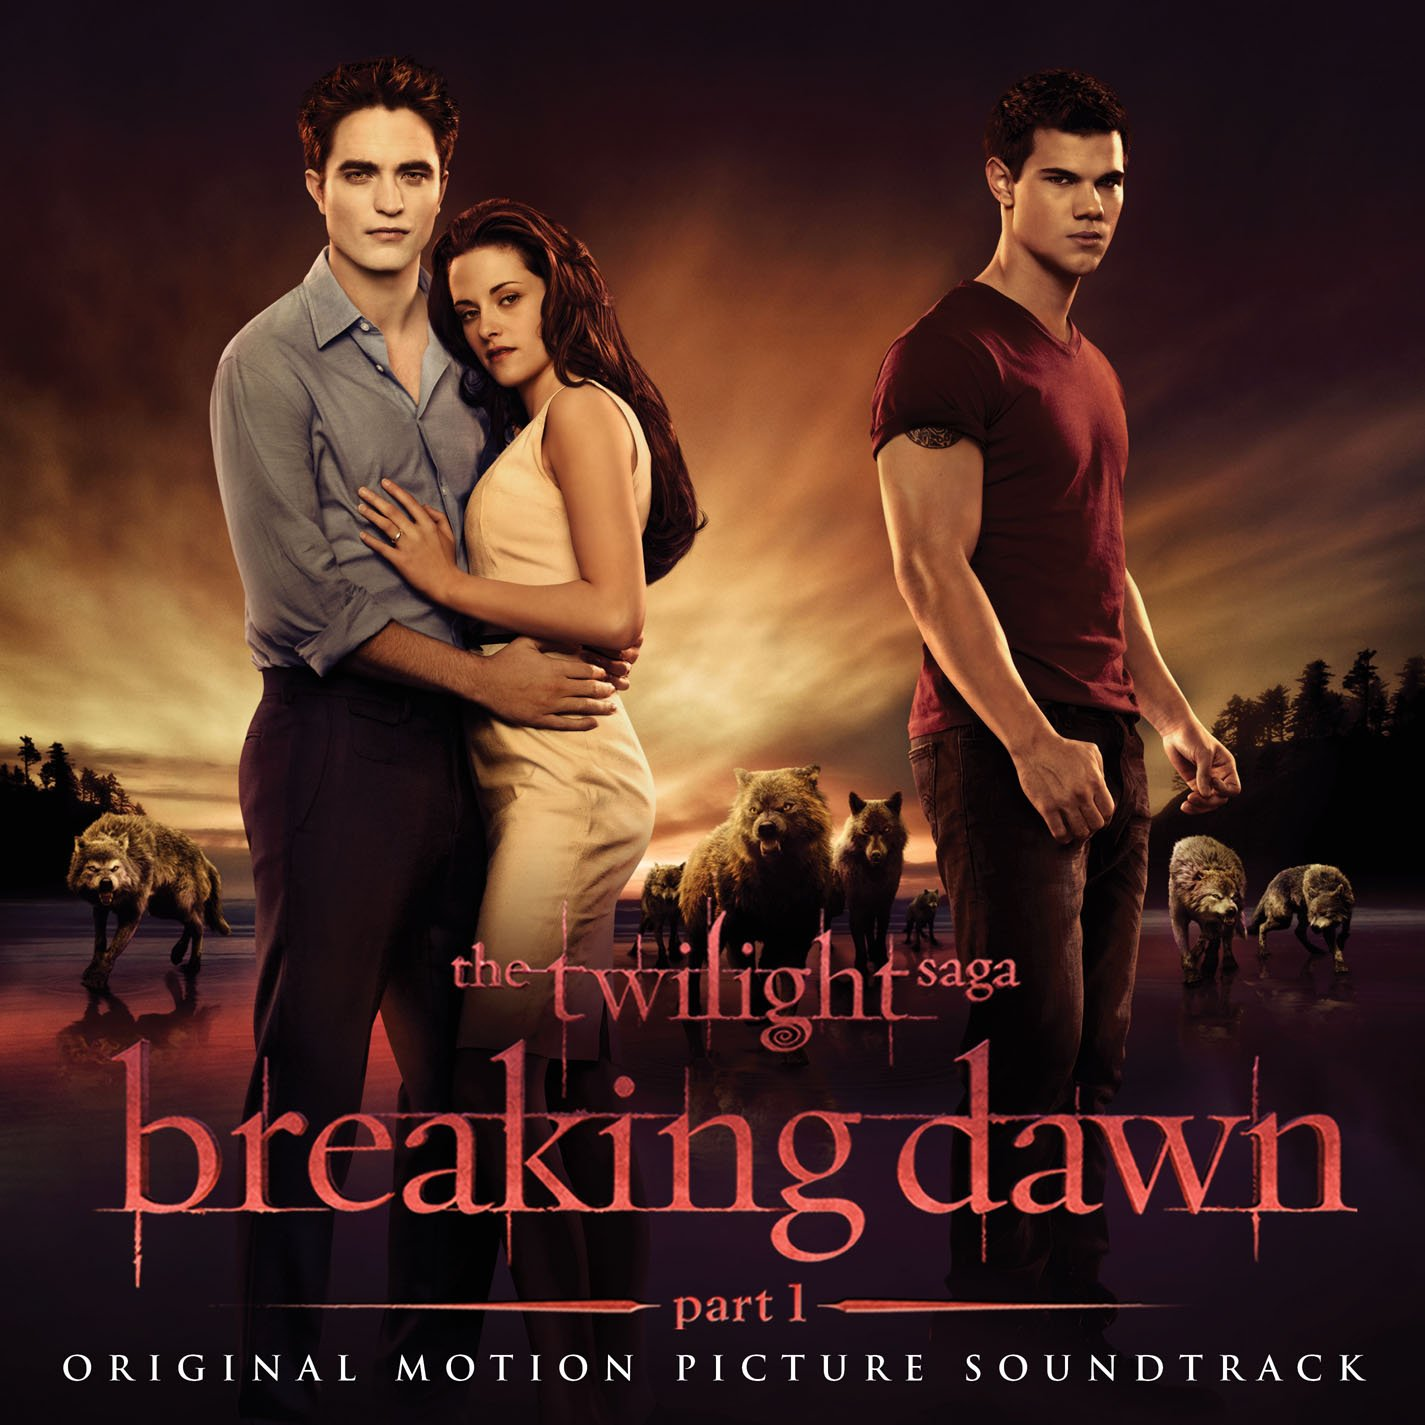 free download twilight breaking dawn part 1 full movie